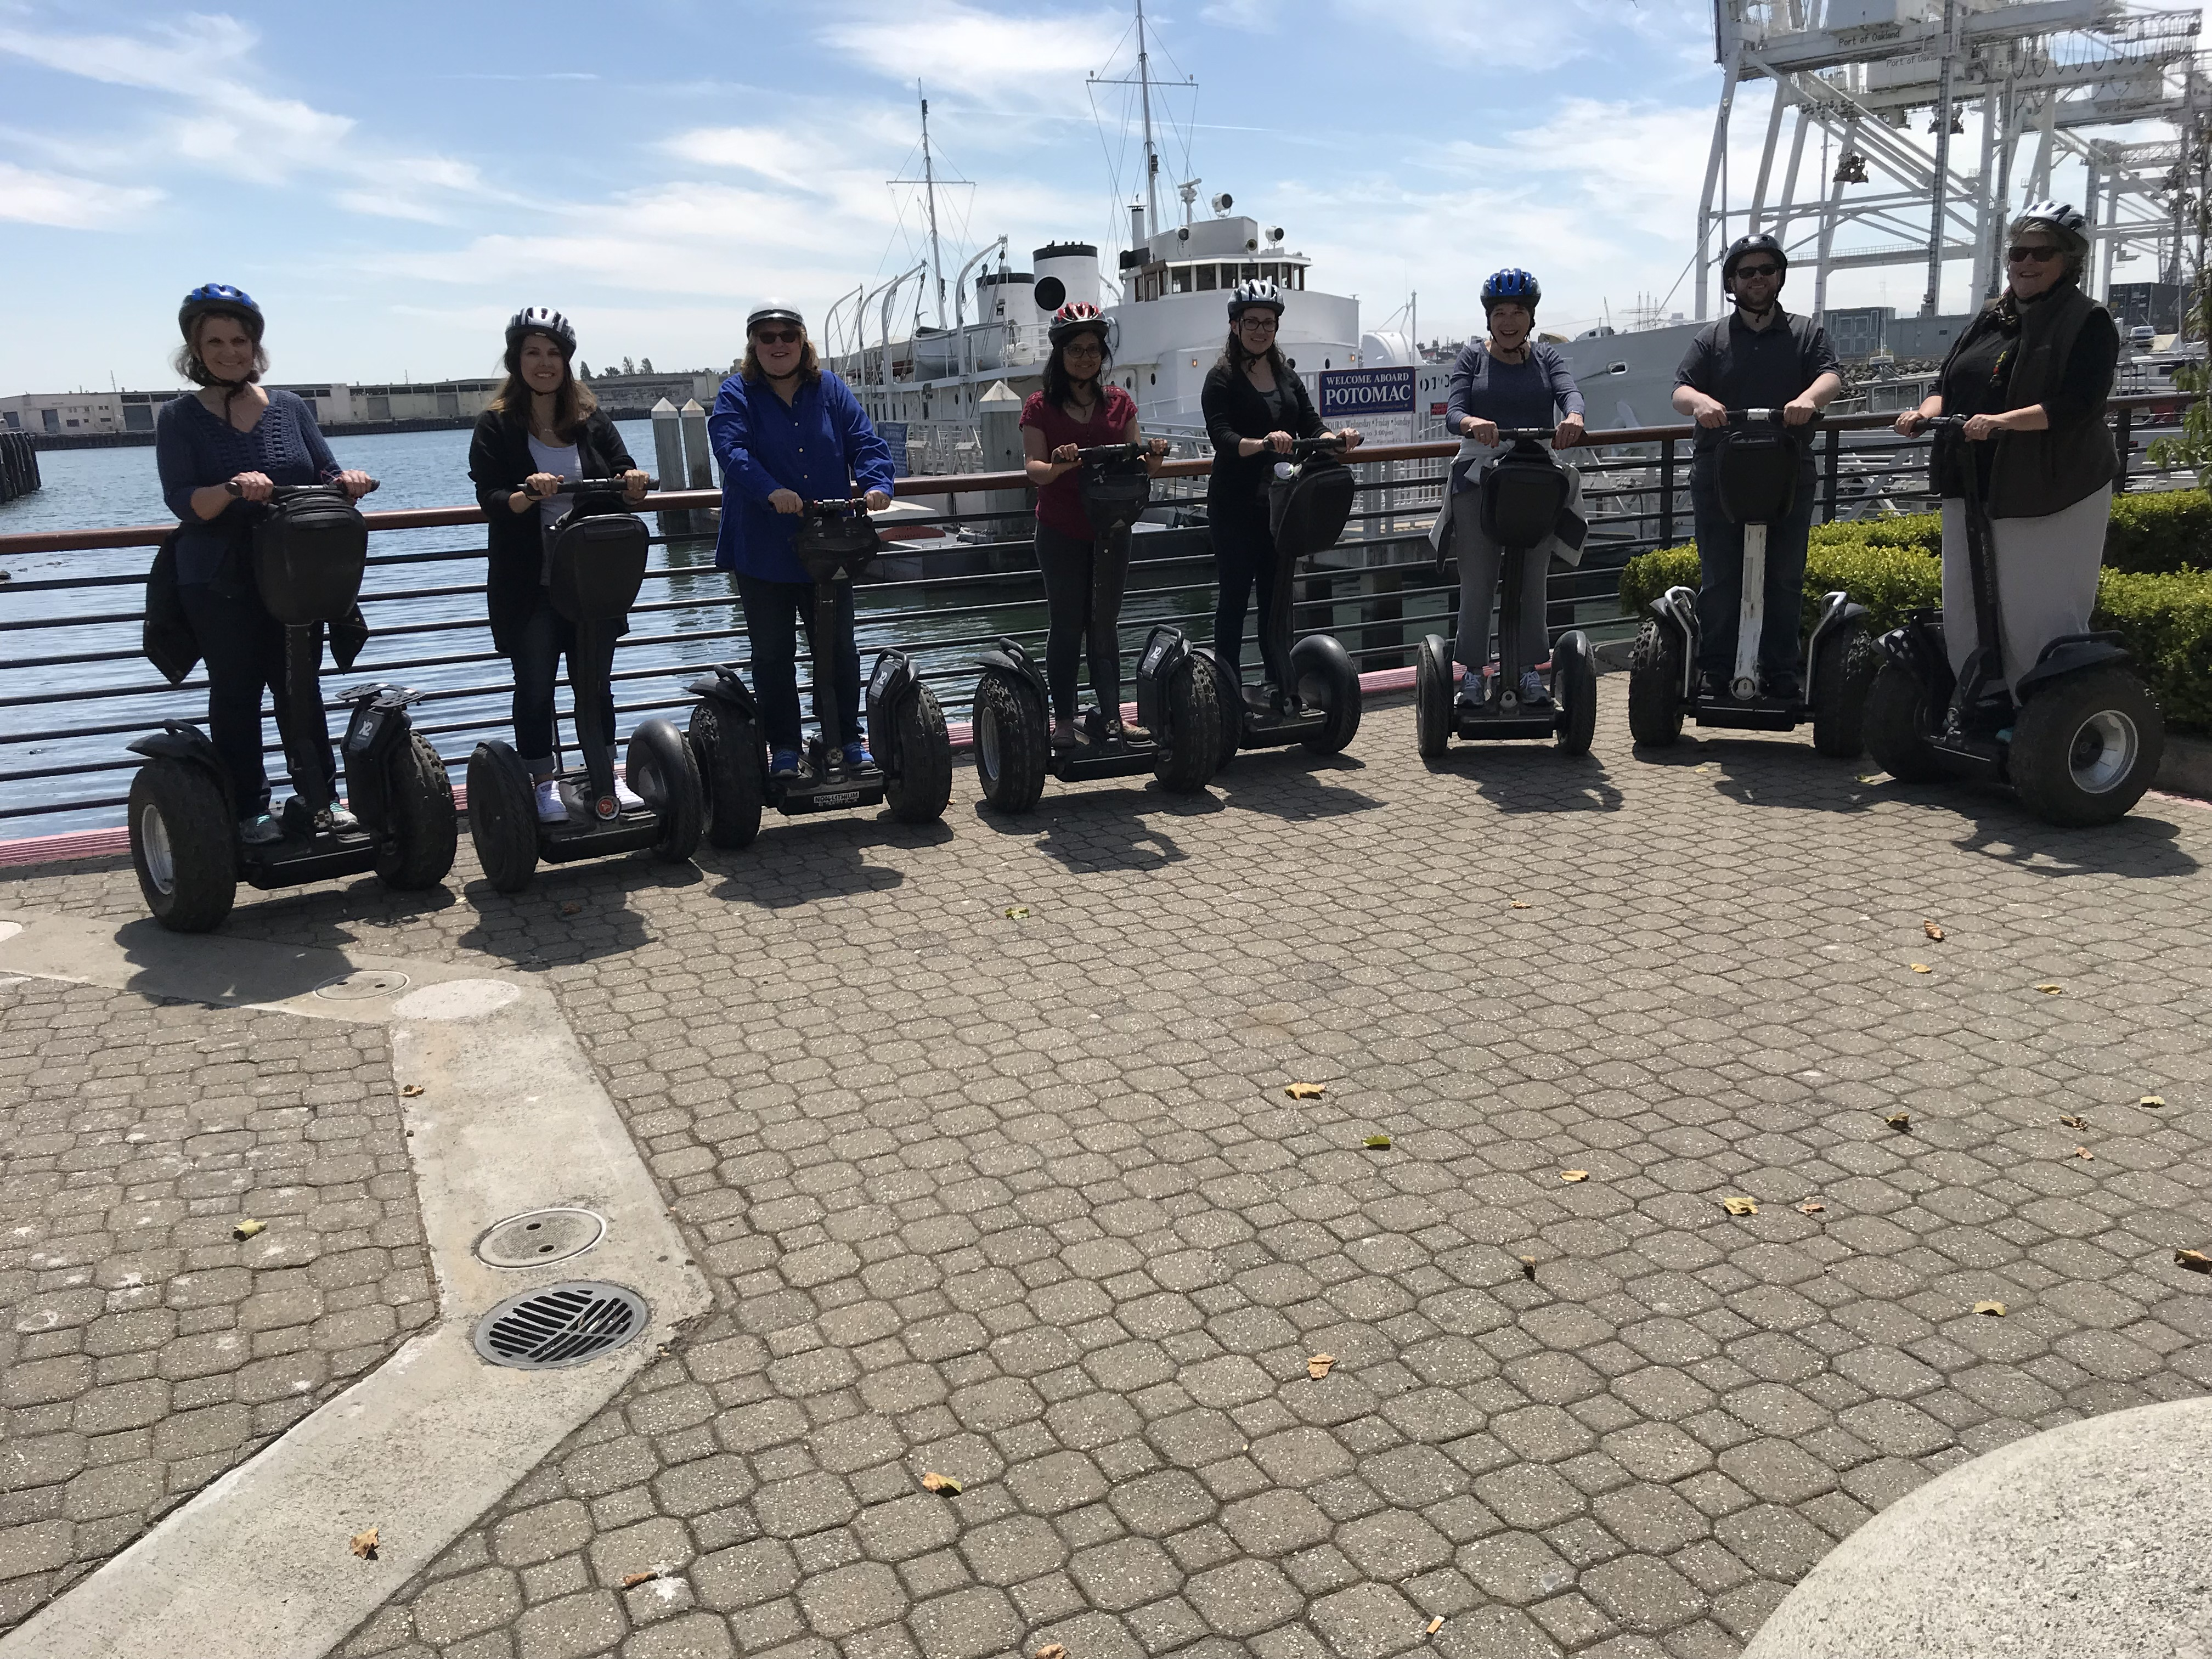 Row of people standing on segways near water and boats